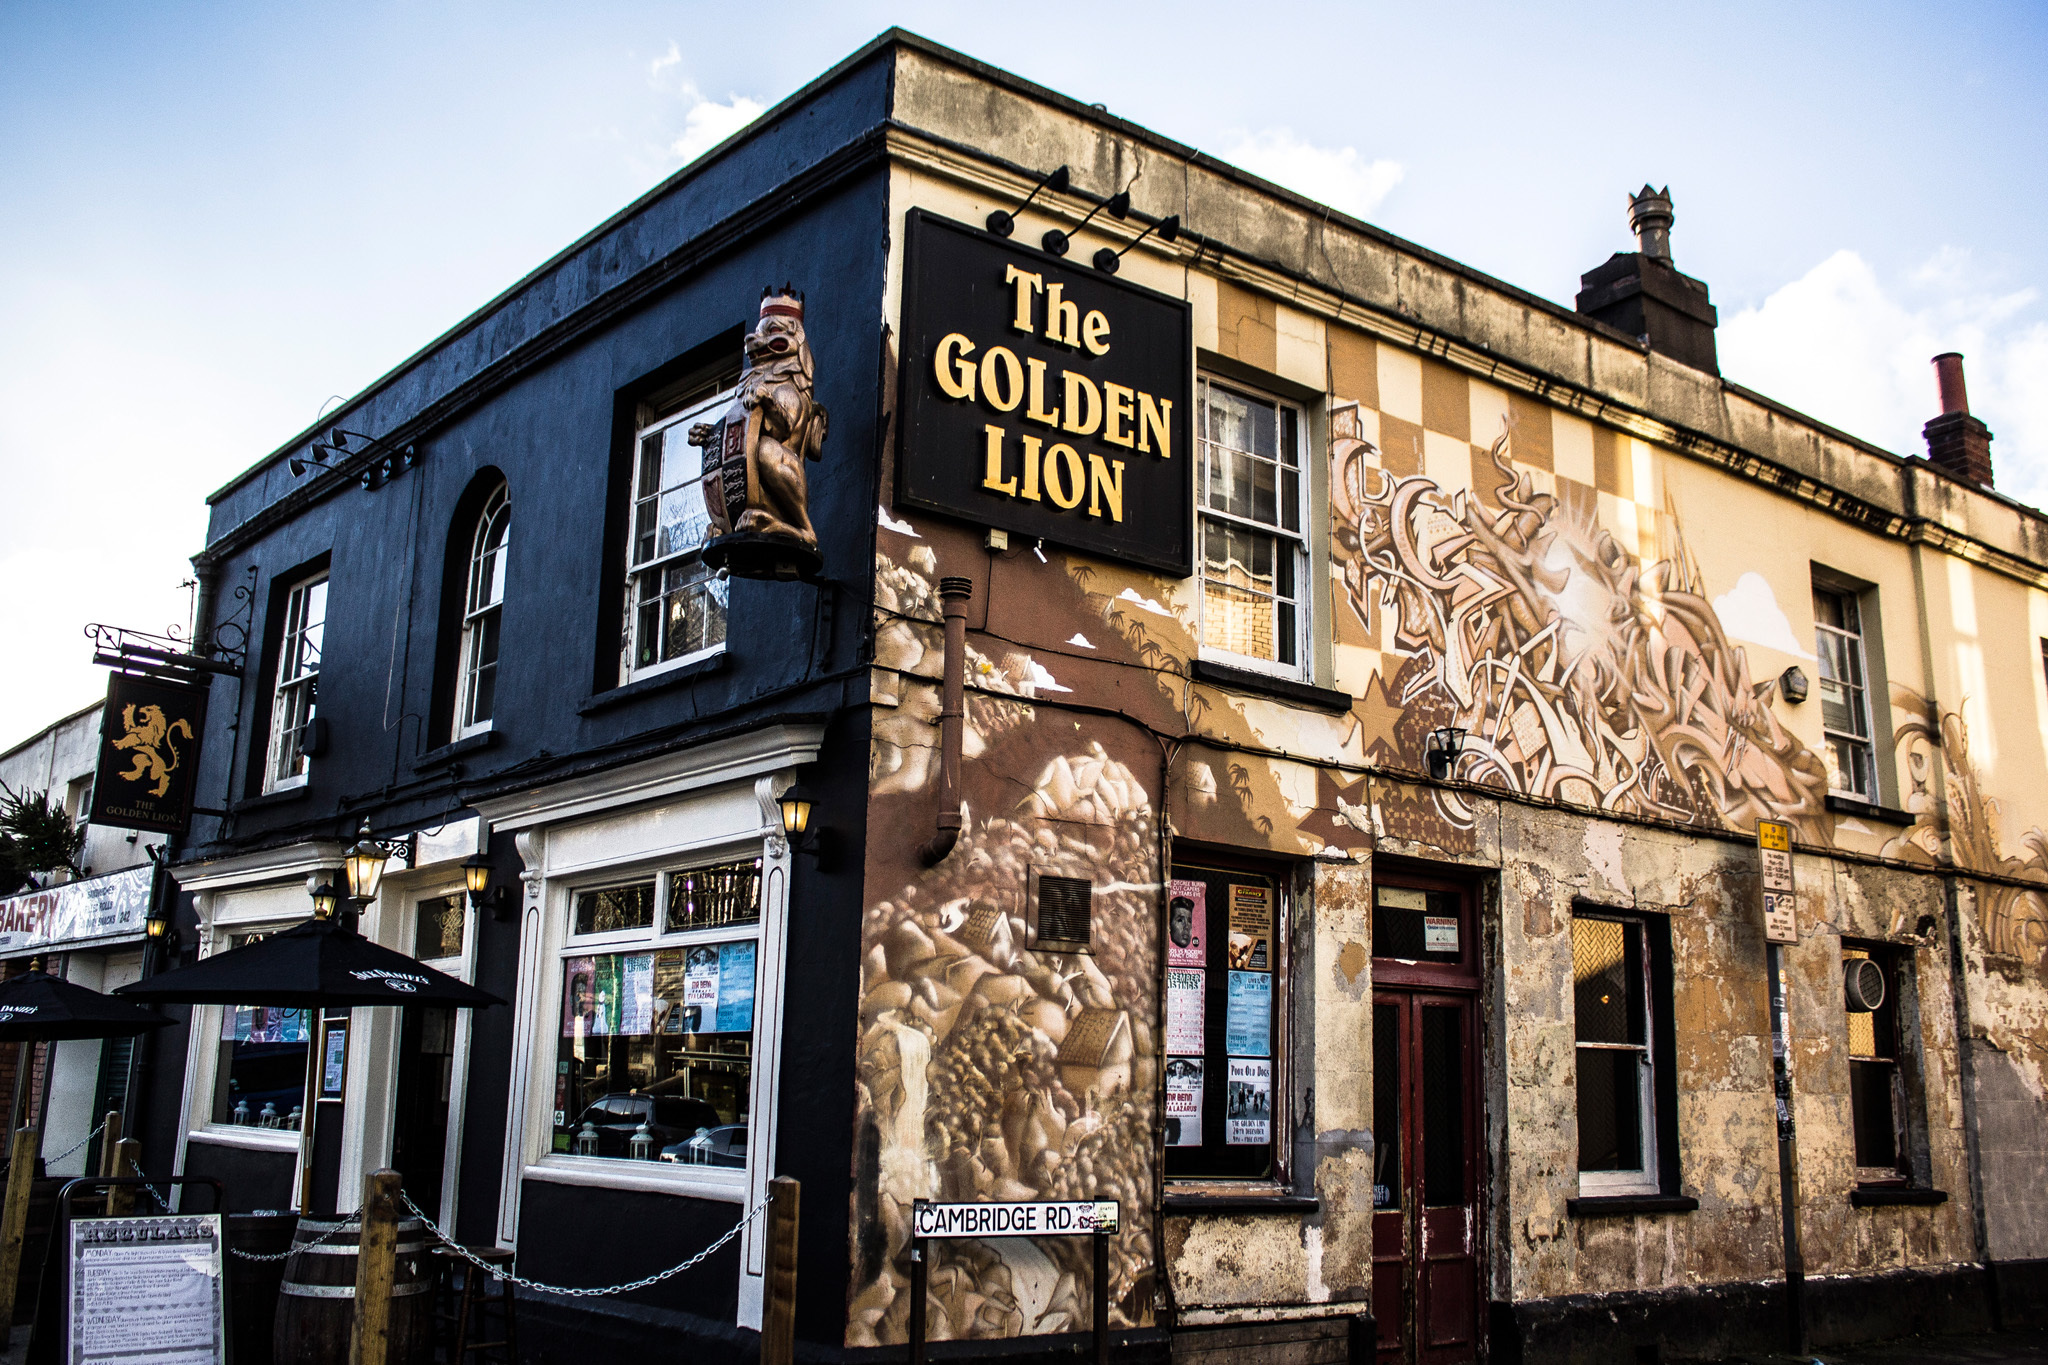 The Golden Lion, Bristol